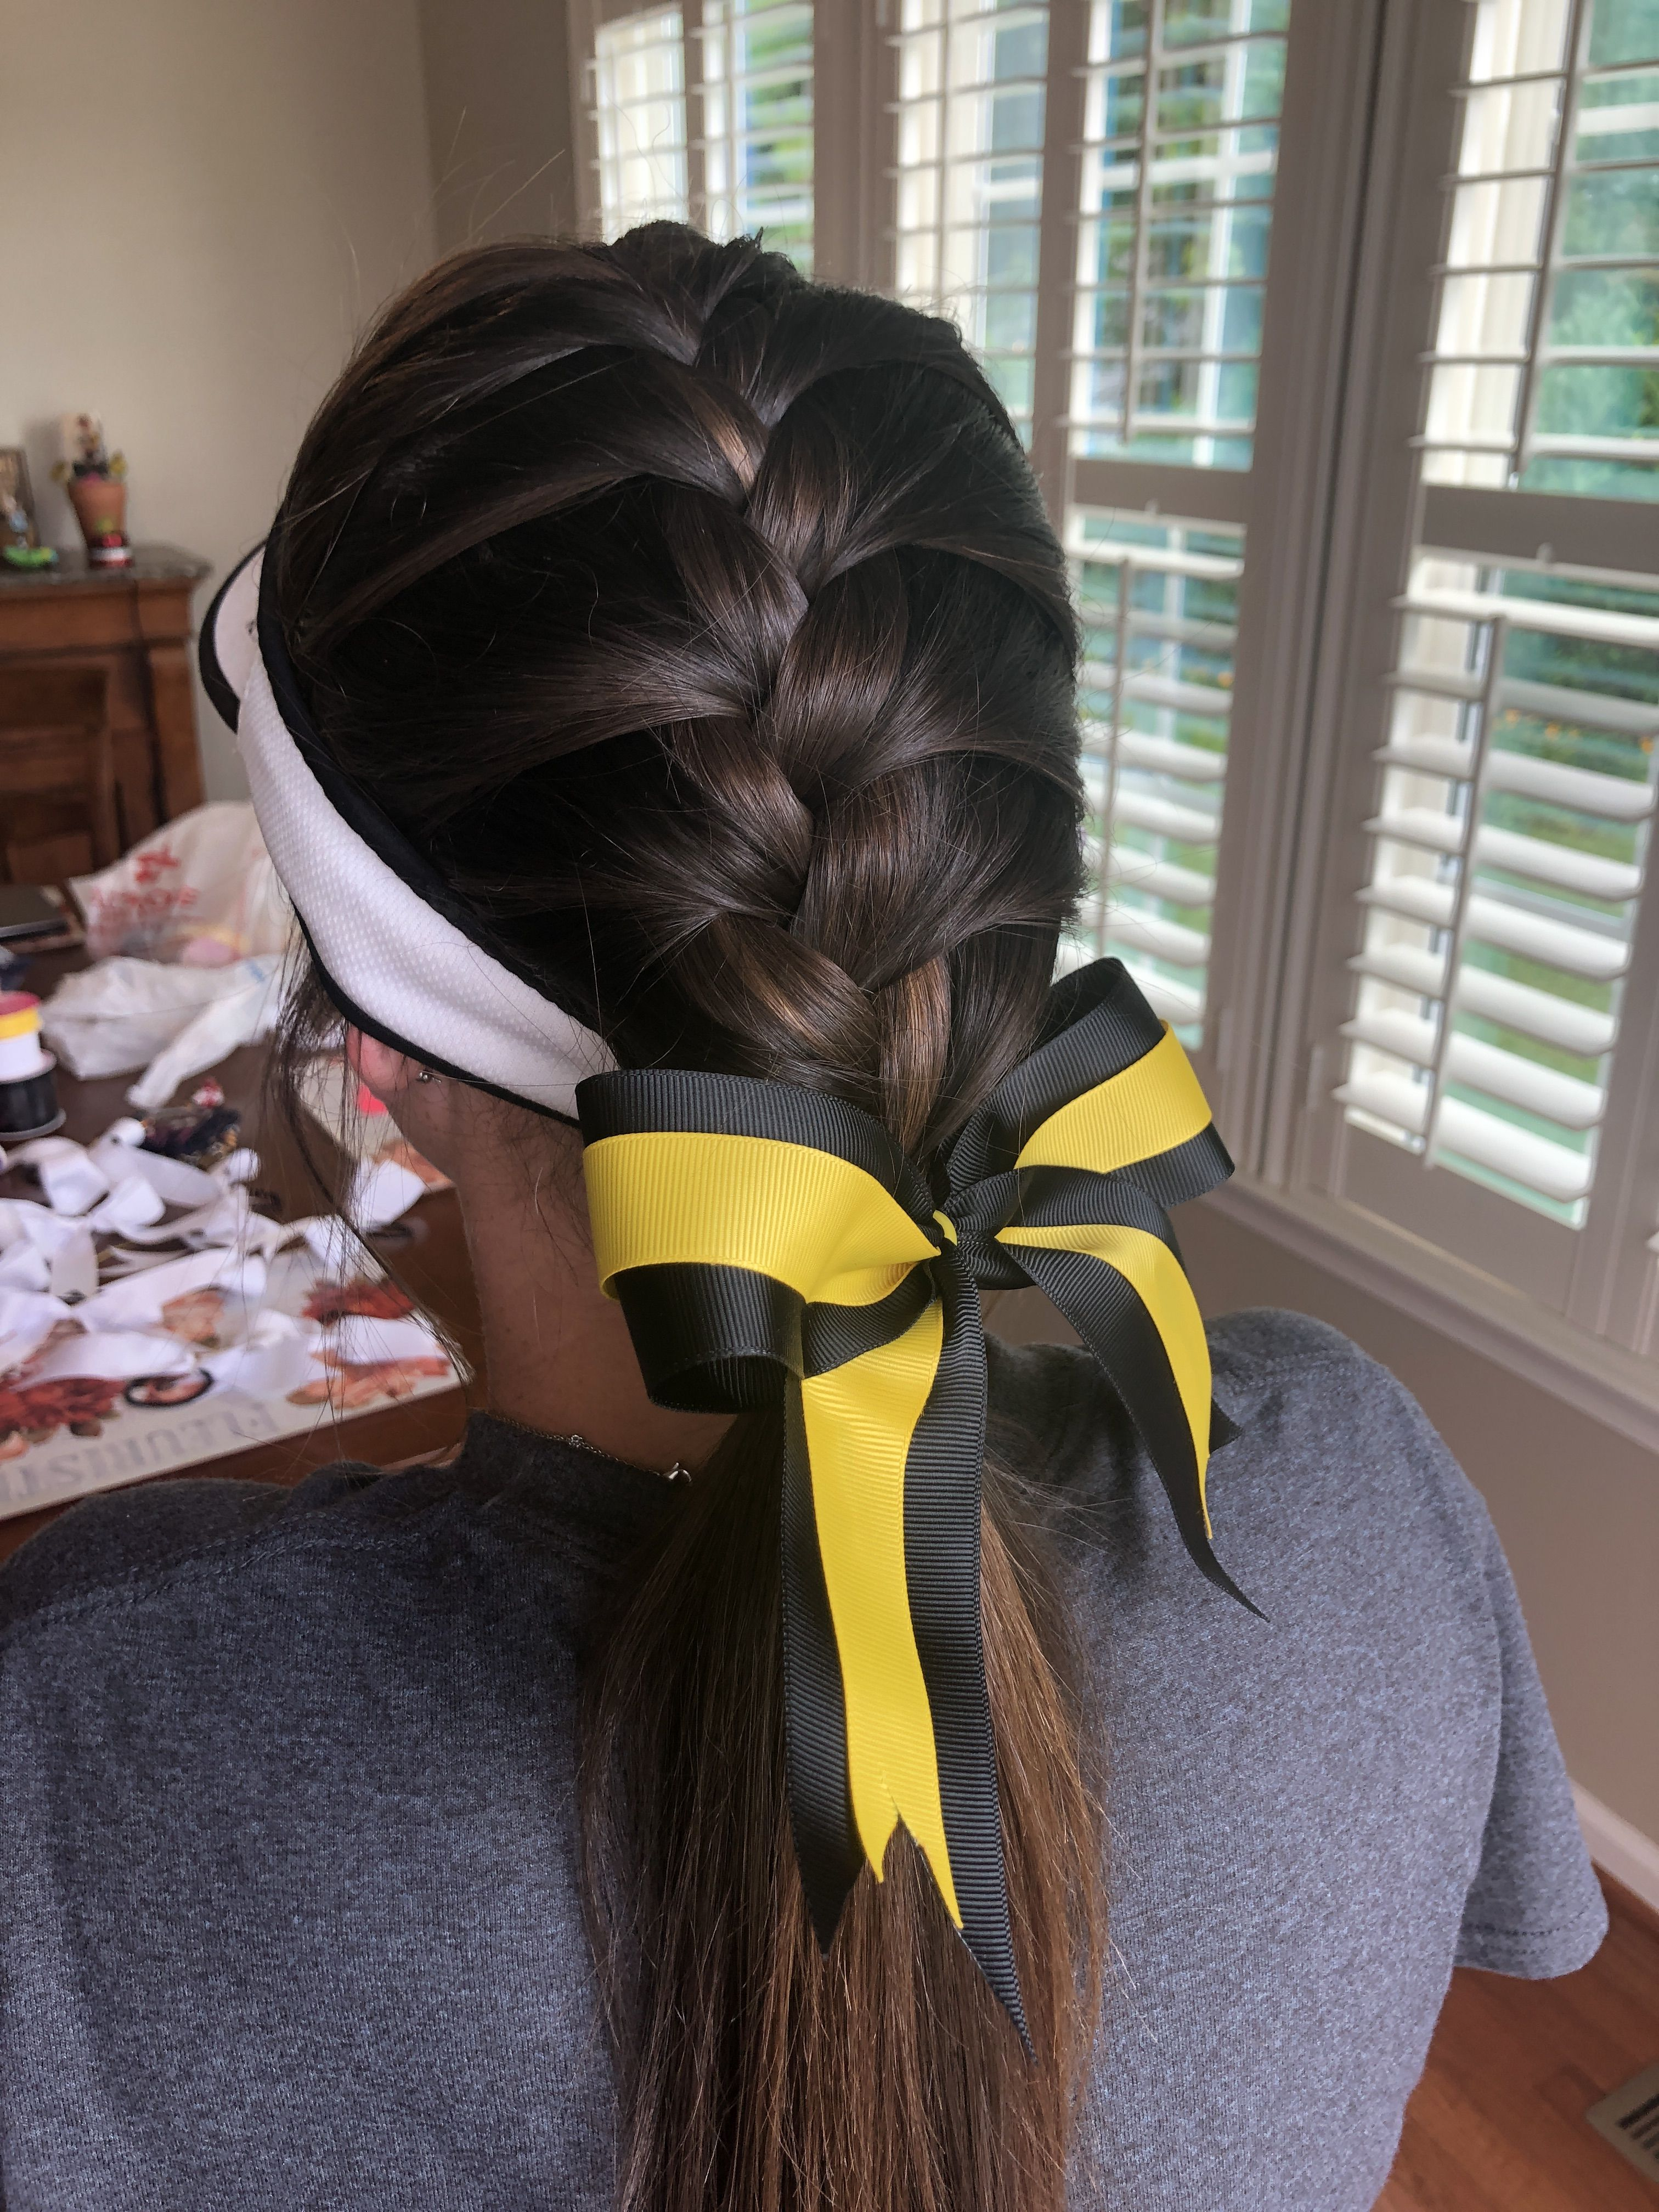 Softball Hair Volleyball Hairstyles Sports Hairstyles Softball Hair Braids